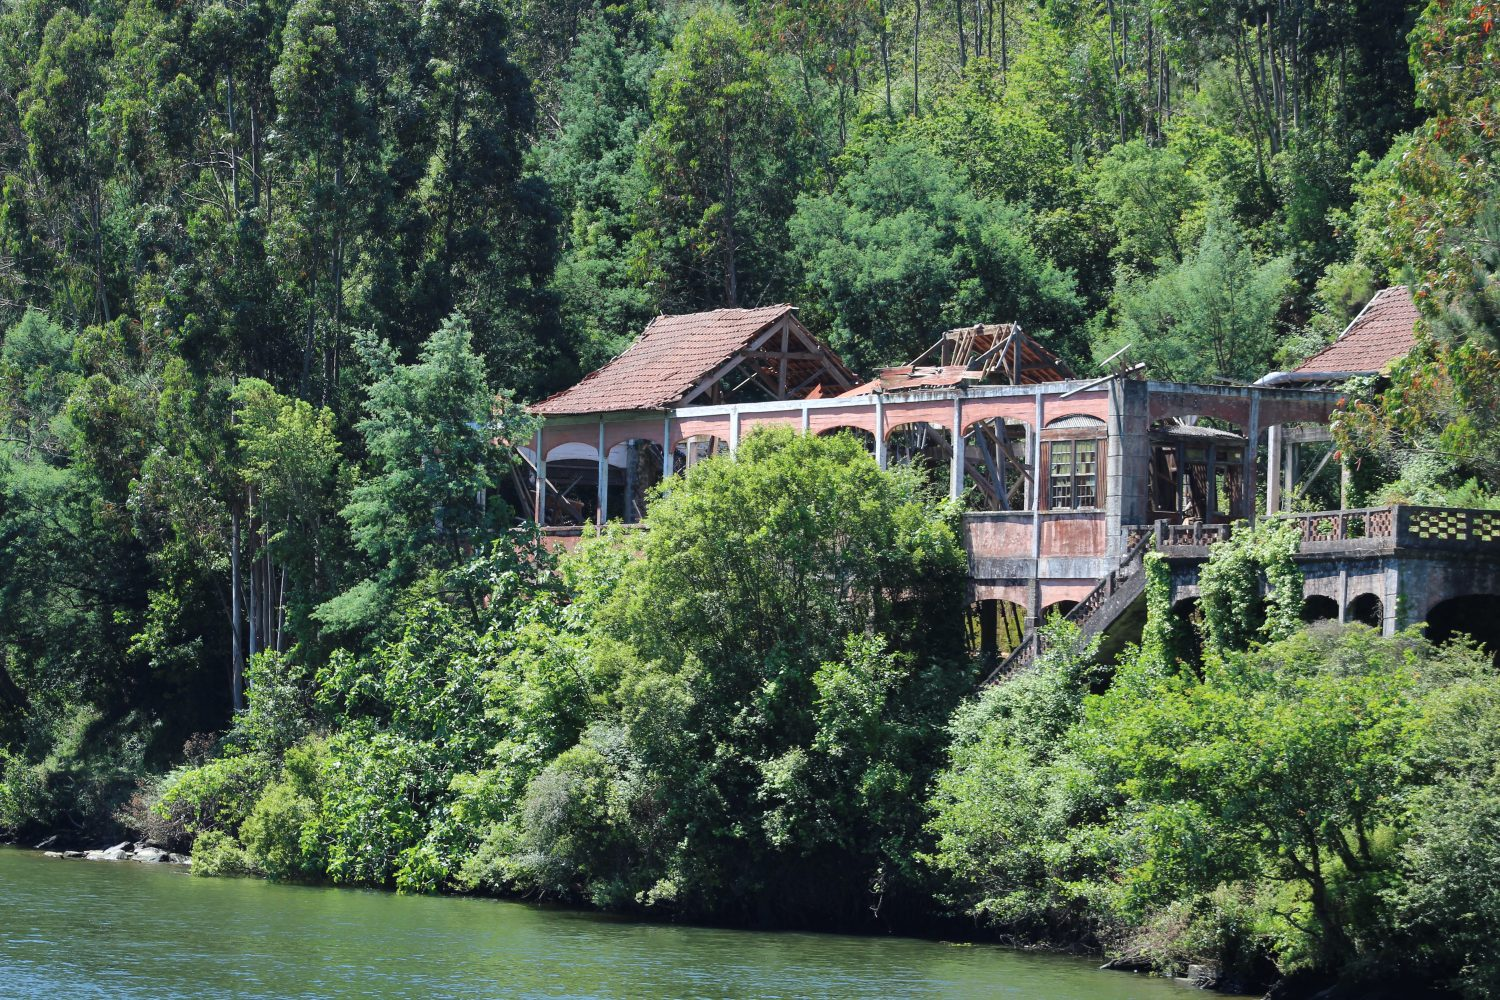 Old house near the river Douro